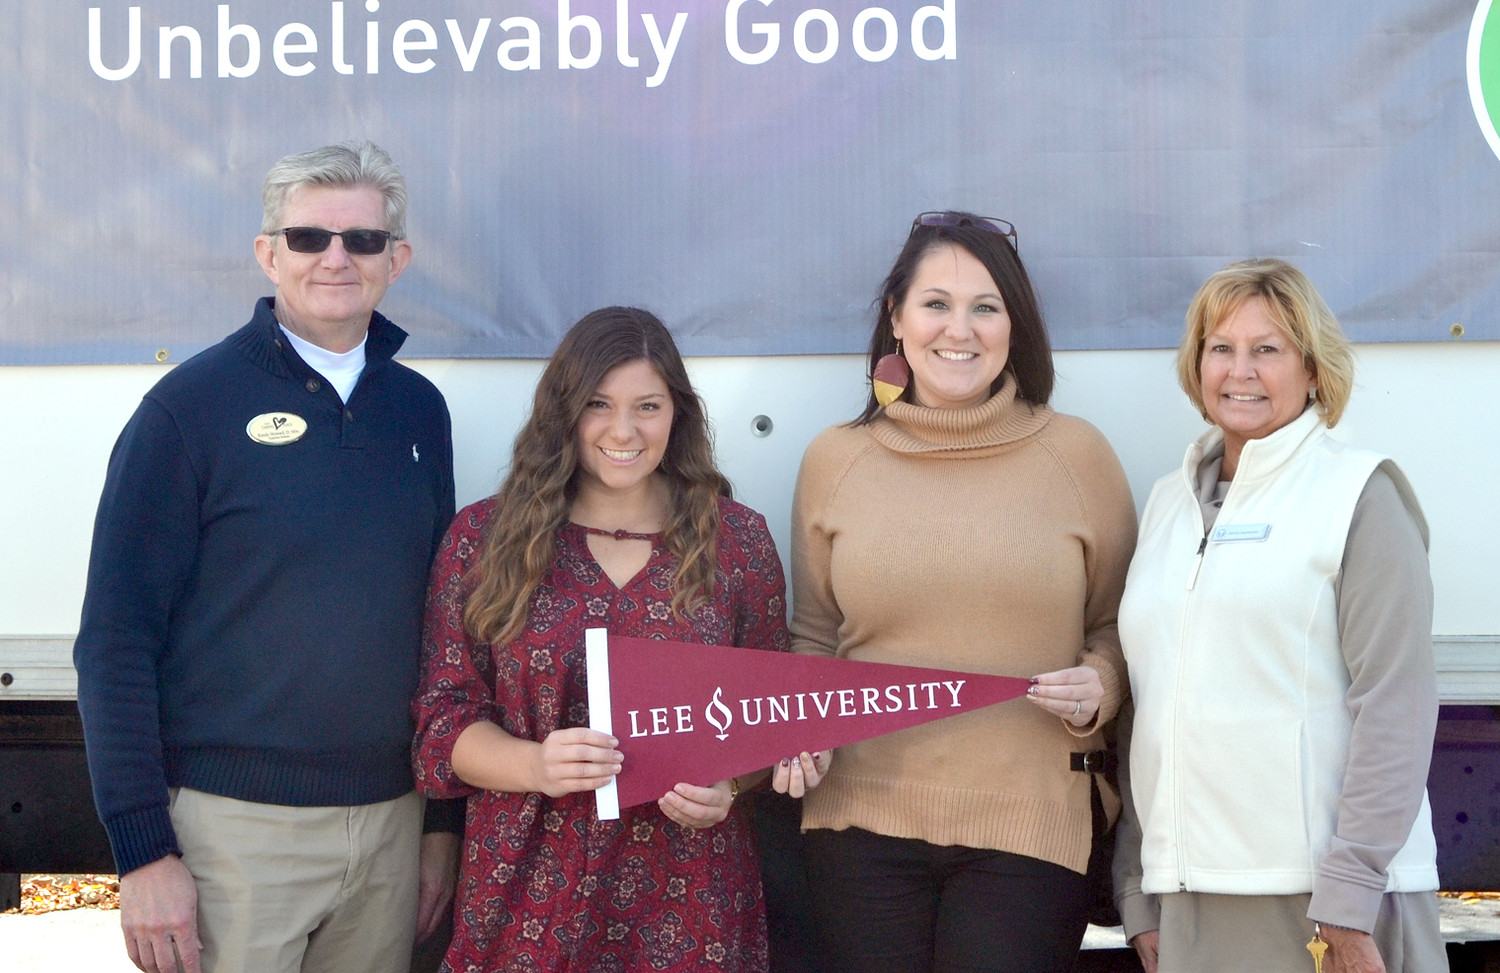 LEE UNIVERSITY delivered food donations  at Southern Heritage's Food Drive. From left are Randy Howard, Brianne Schapira, Bethany McCoy and Denise DeArmond.